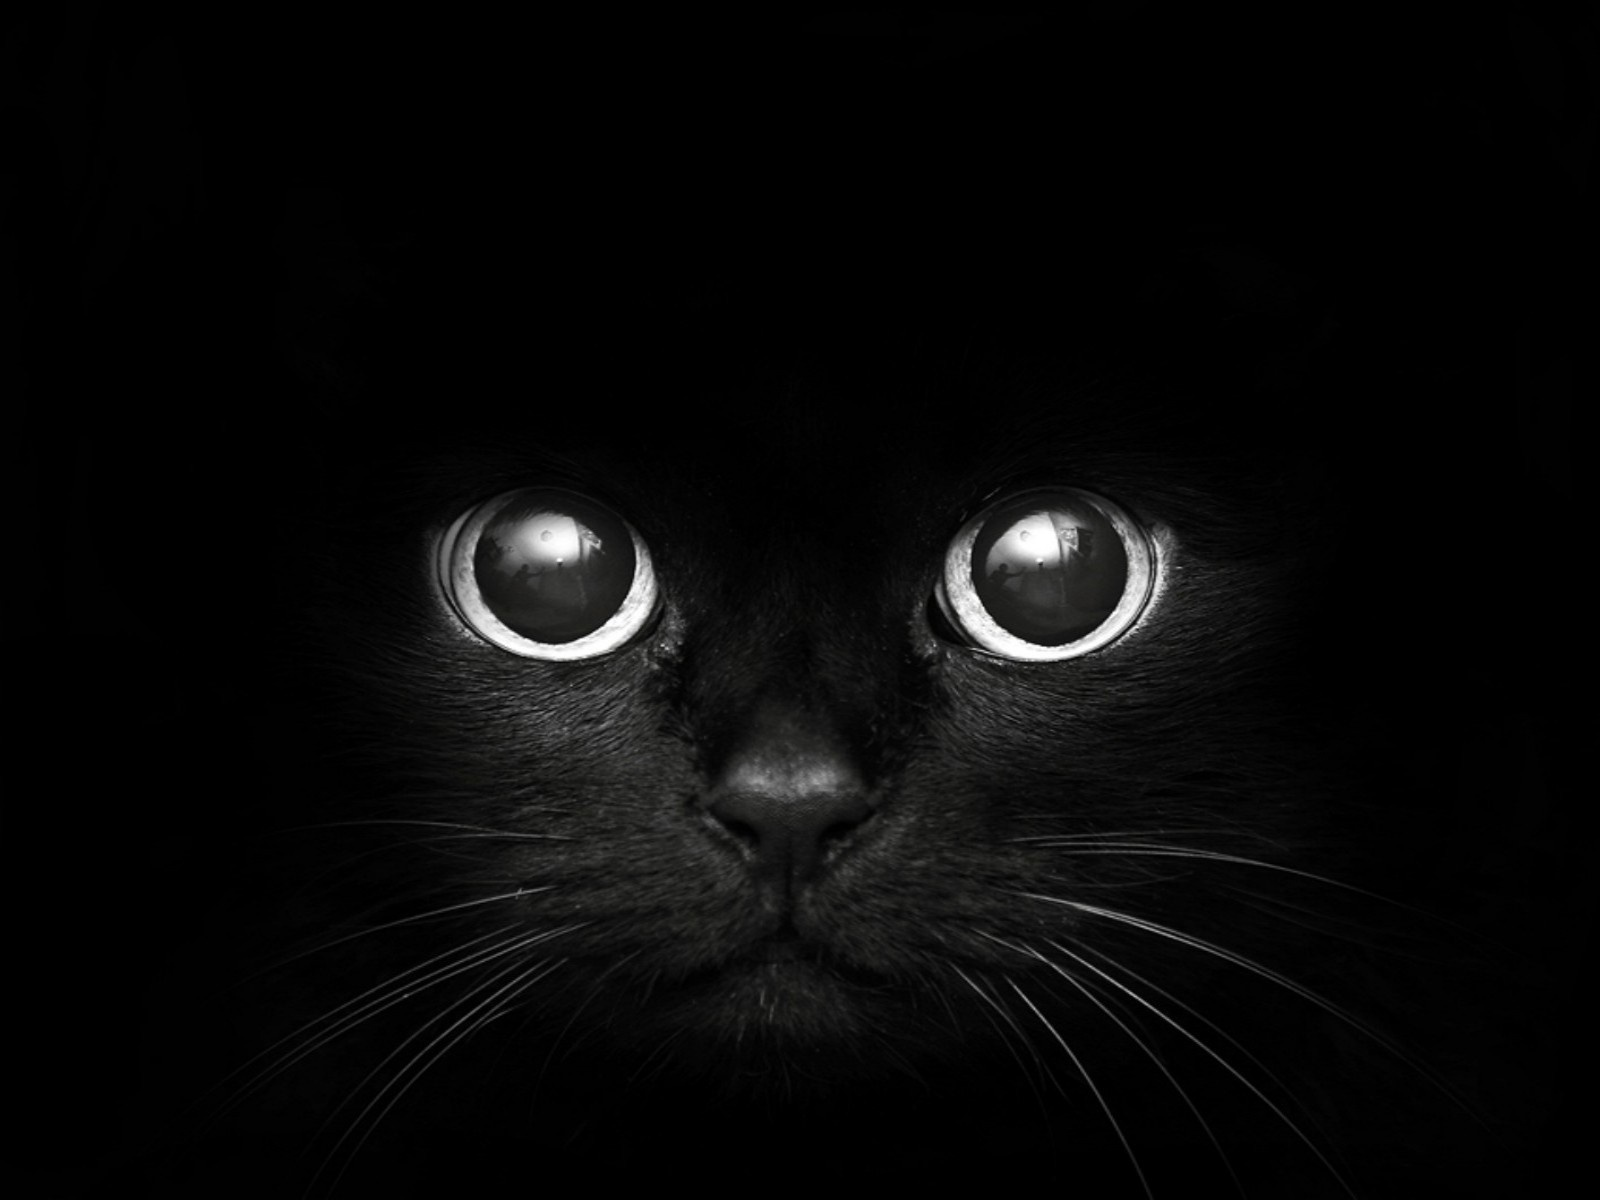 black cat wallpaper | 1600x1200 | #74496